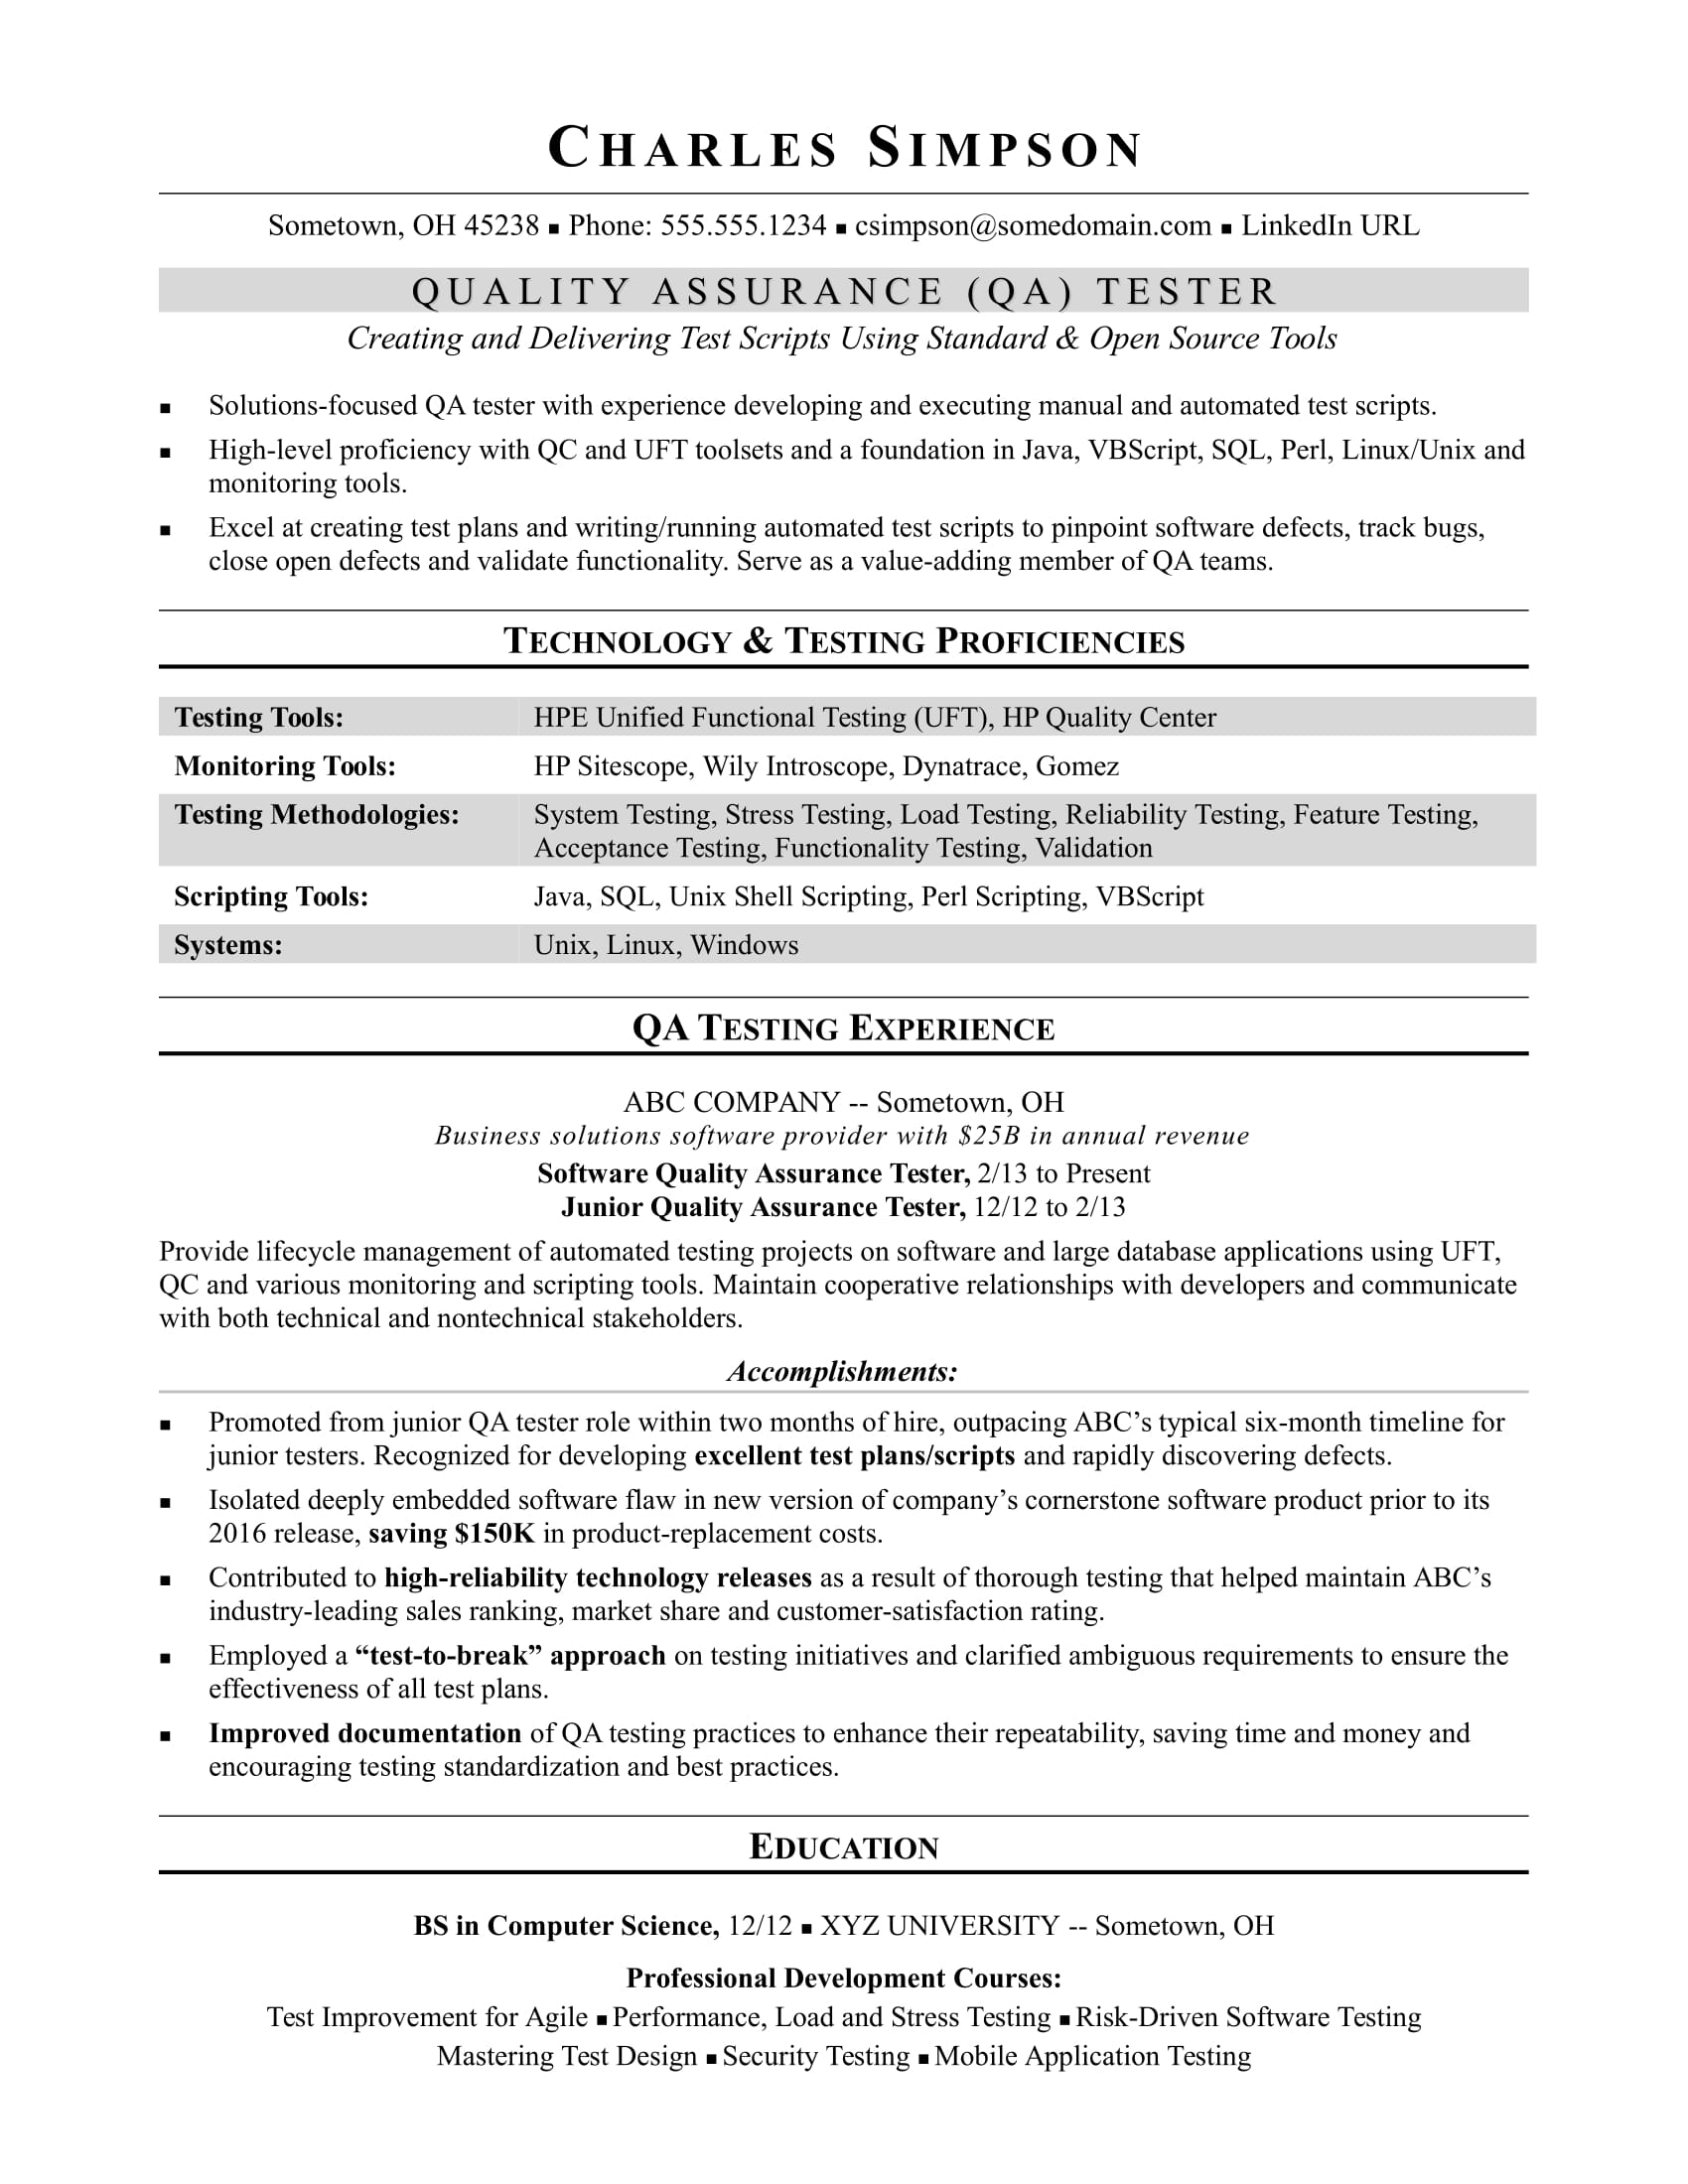 sample resume for midlevel qa software tester monster automation make and print free Resume Automation Tester Resume